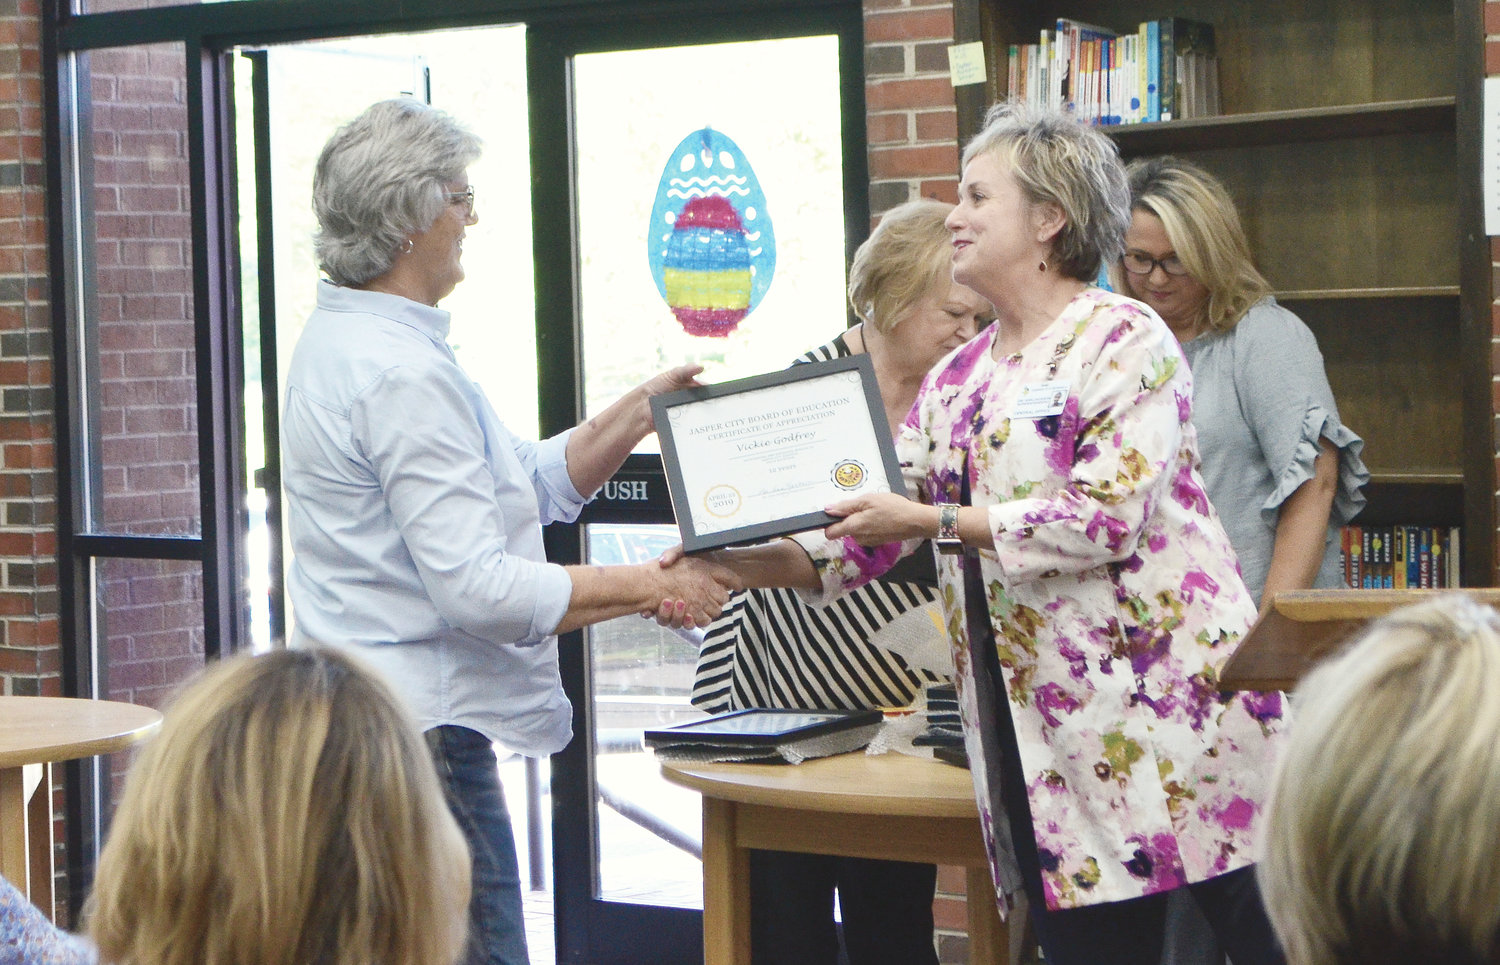 Vickie Godfrey of Memorial Park Elementary School was honored for 12 years of service in the CNP program.